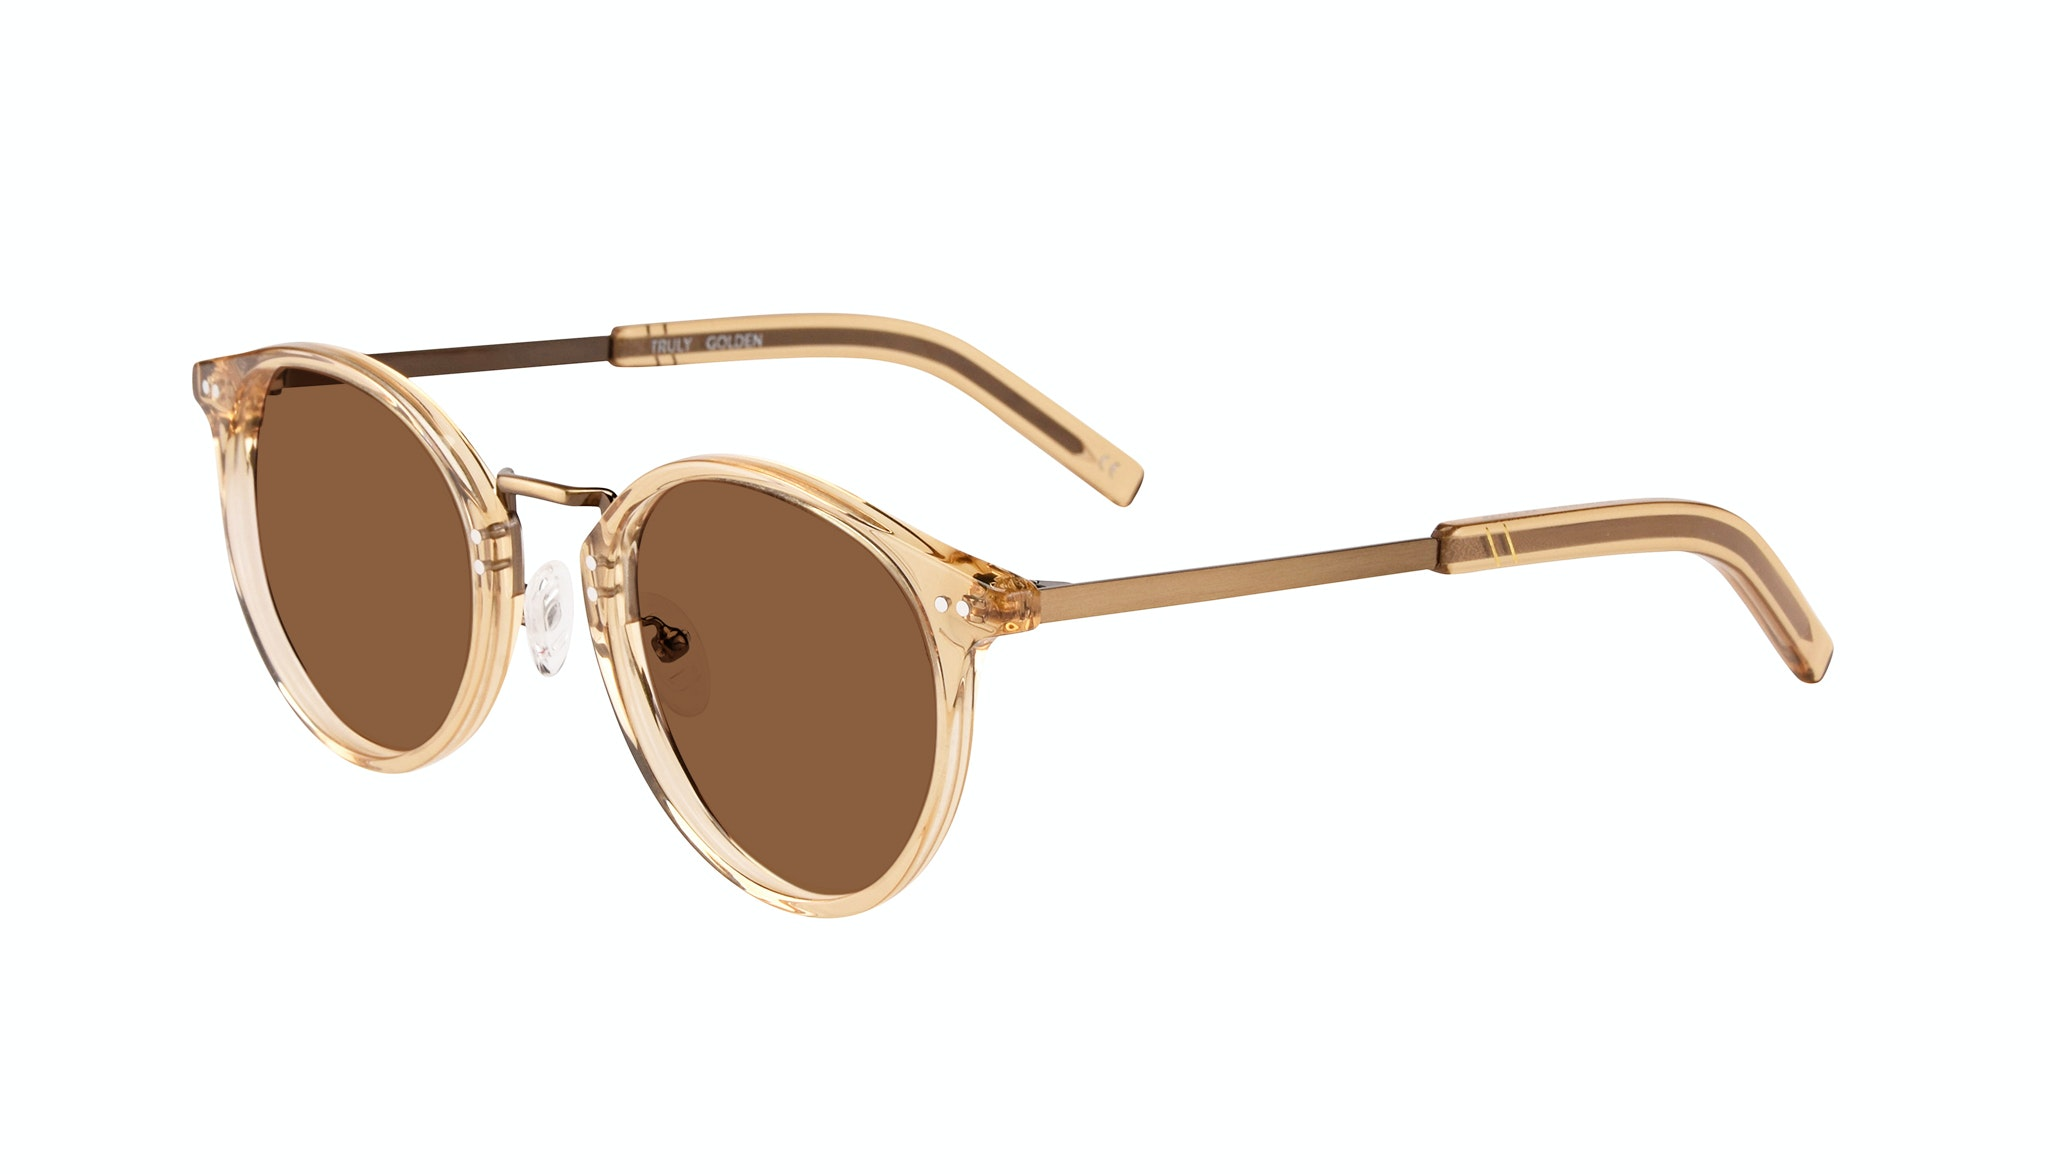 Affordable Fashion Glasses Round Sunglasses Men Truly Golden Tilt